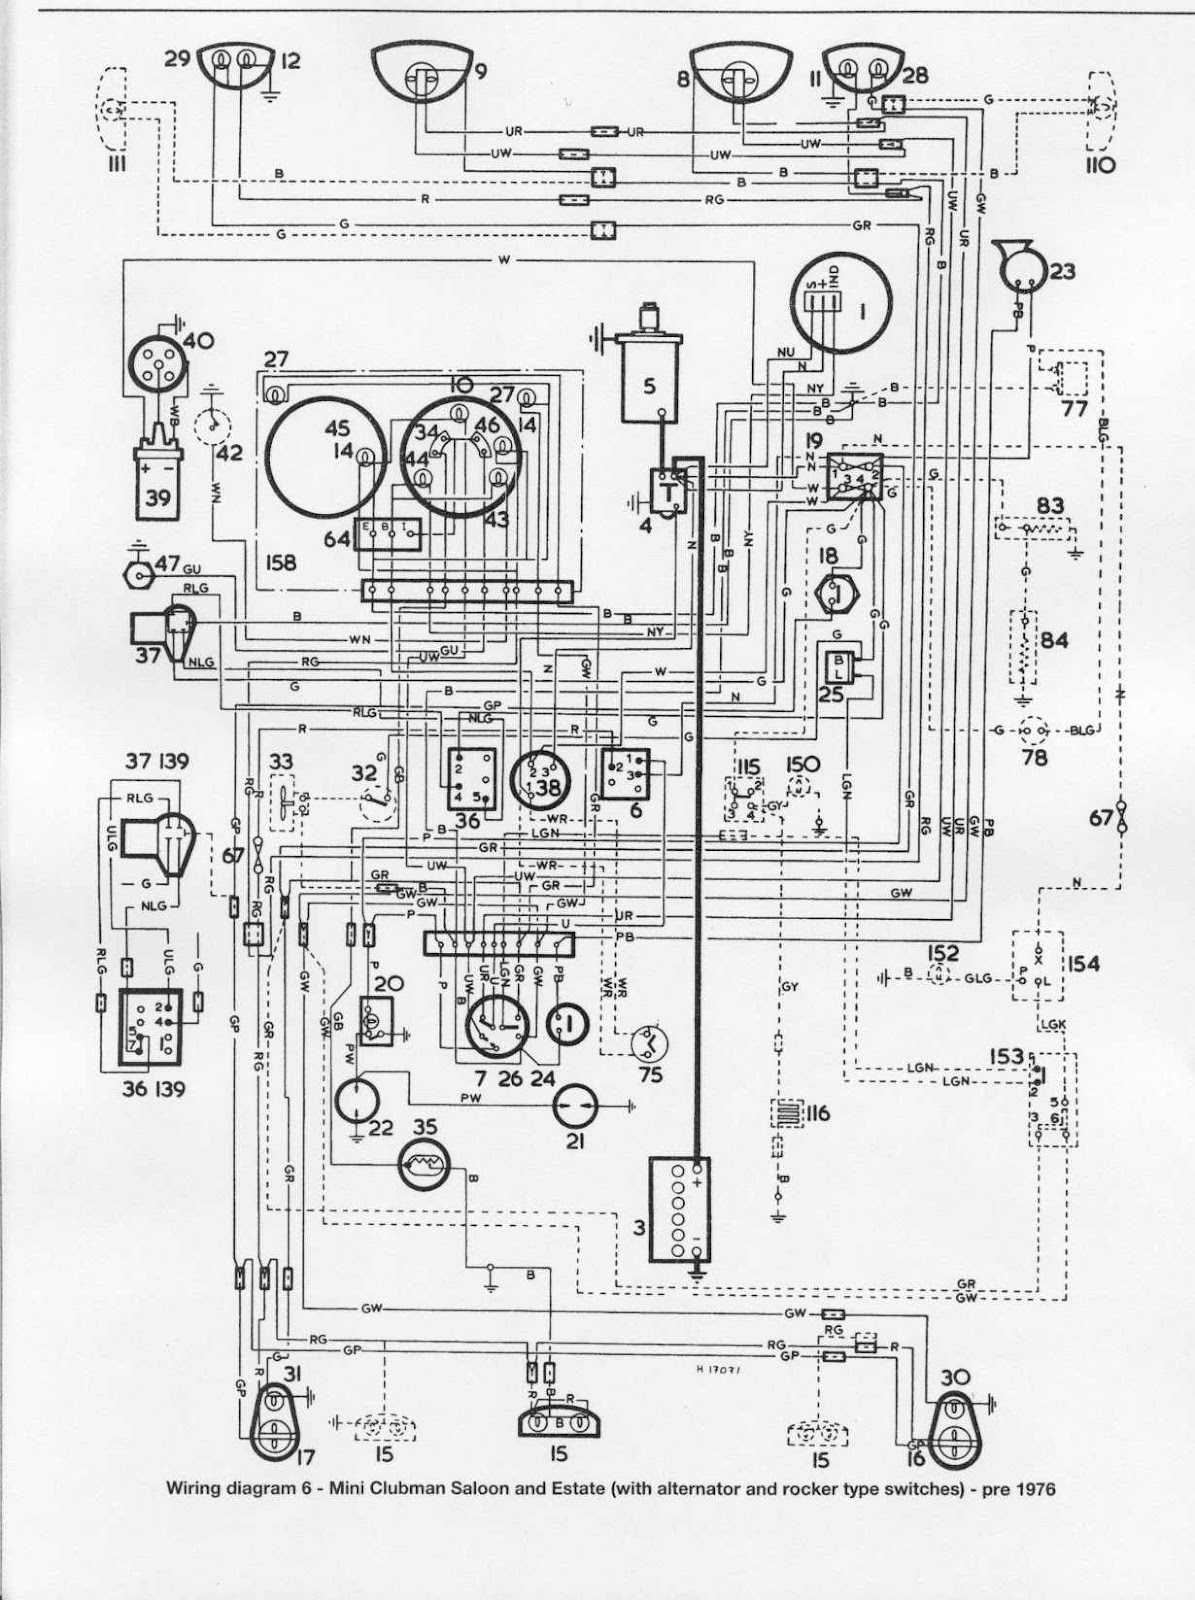 05 mini cooper wiring diagram online schematics diagram rh delvato co 2009  Mini Cooper Fuse Symbols Mini Cooper Fuse Symbols Key